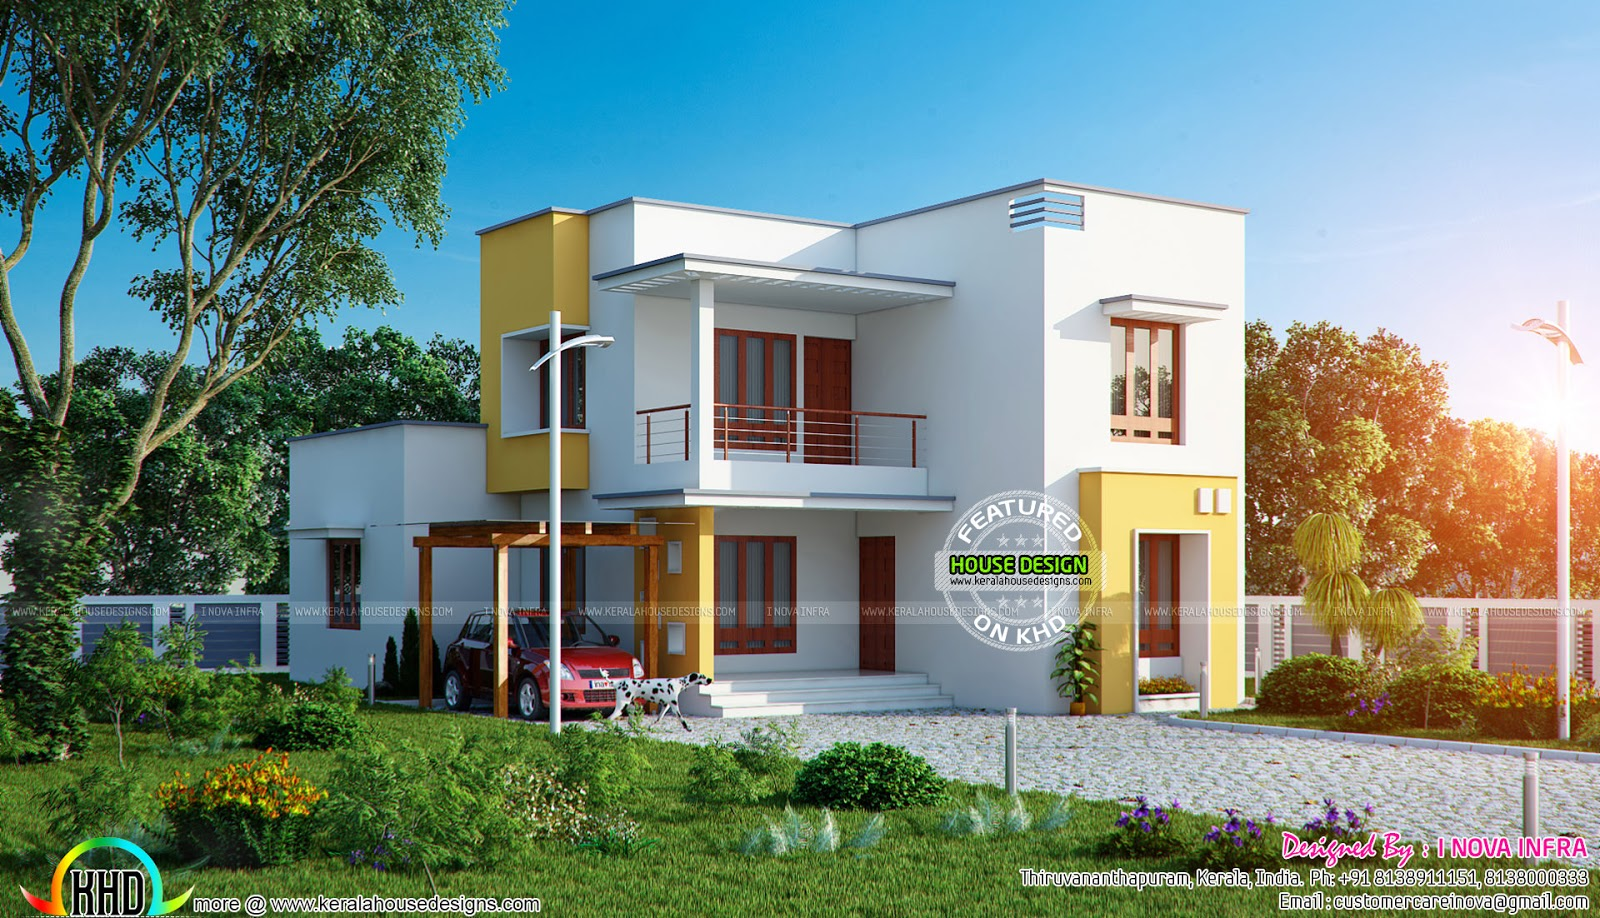 Flat roof 209 sq m house plan kerala home design and floor plans - House plans atticsquare meters ...